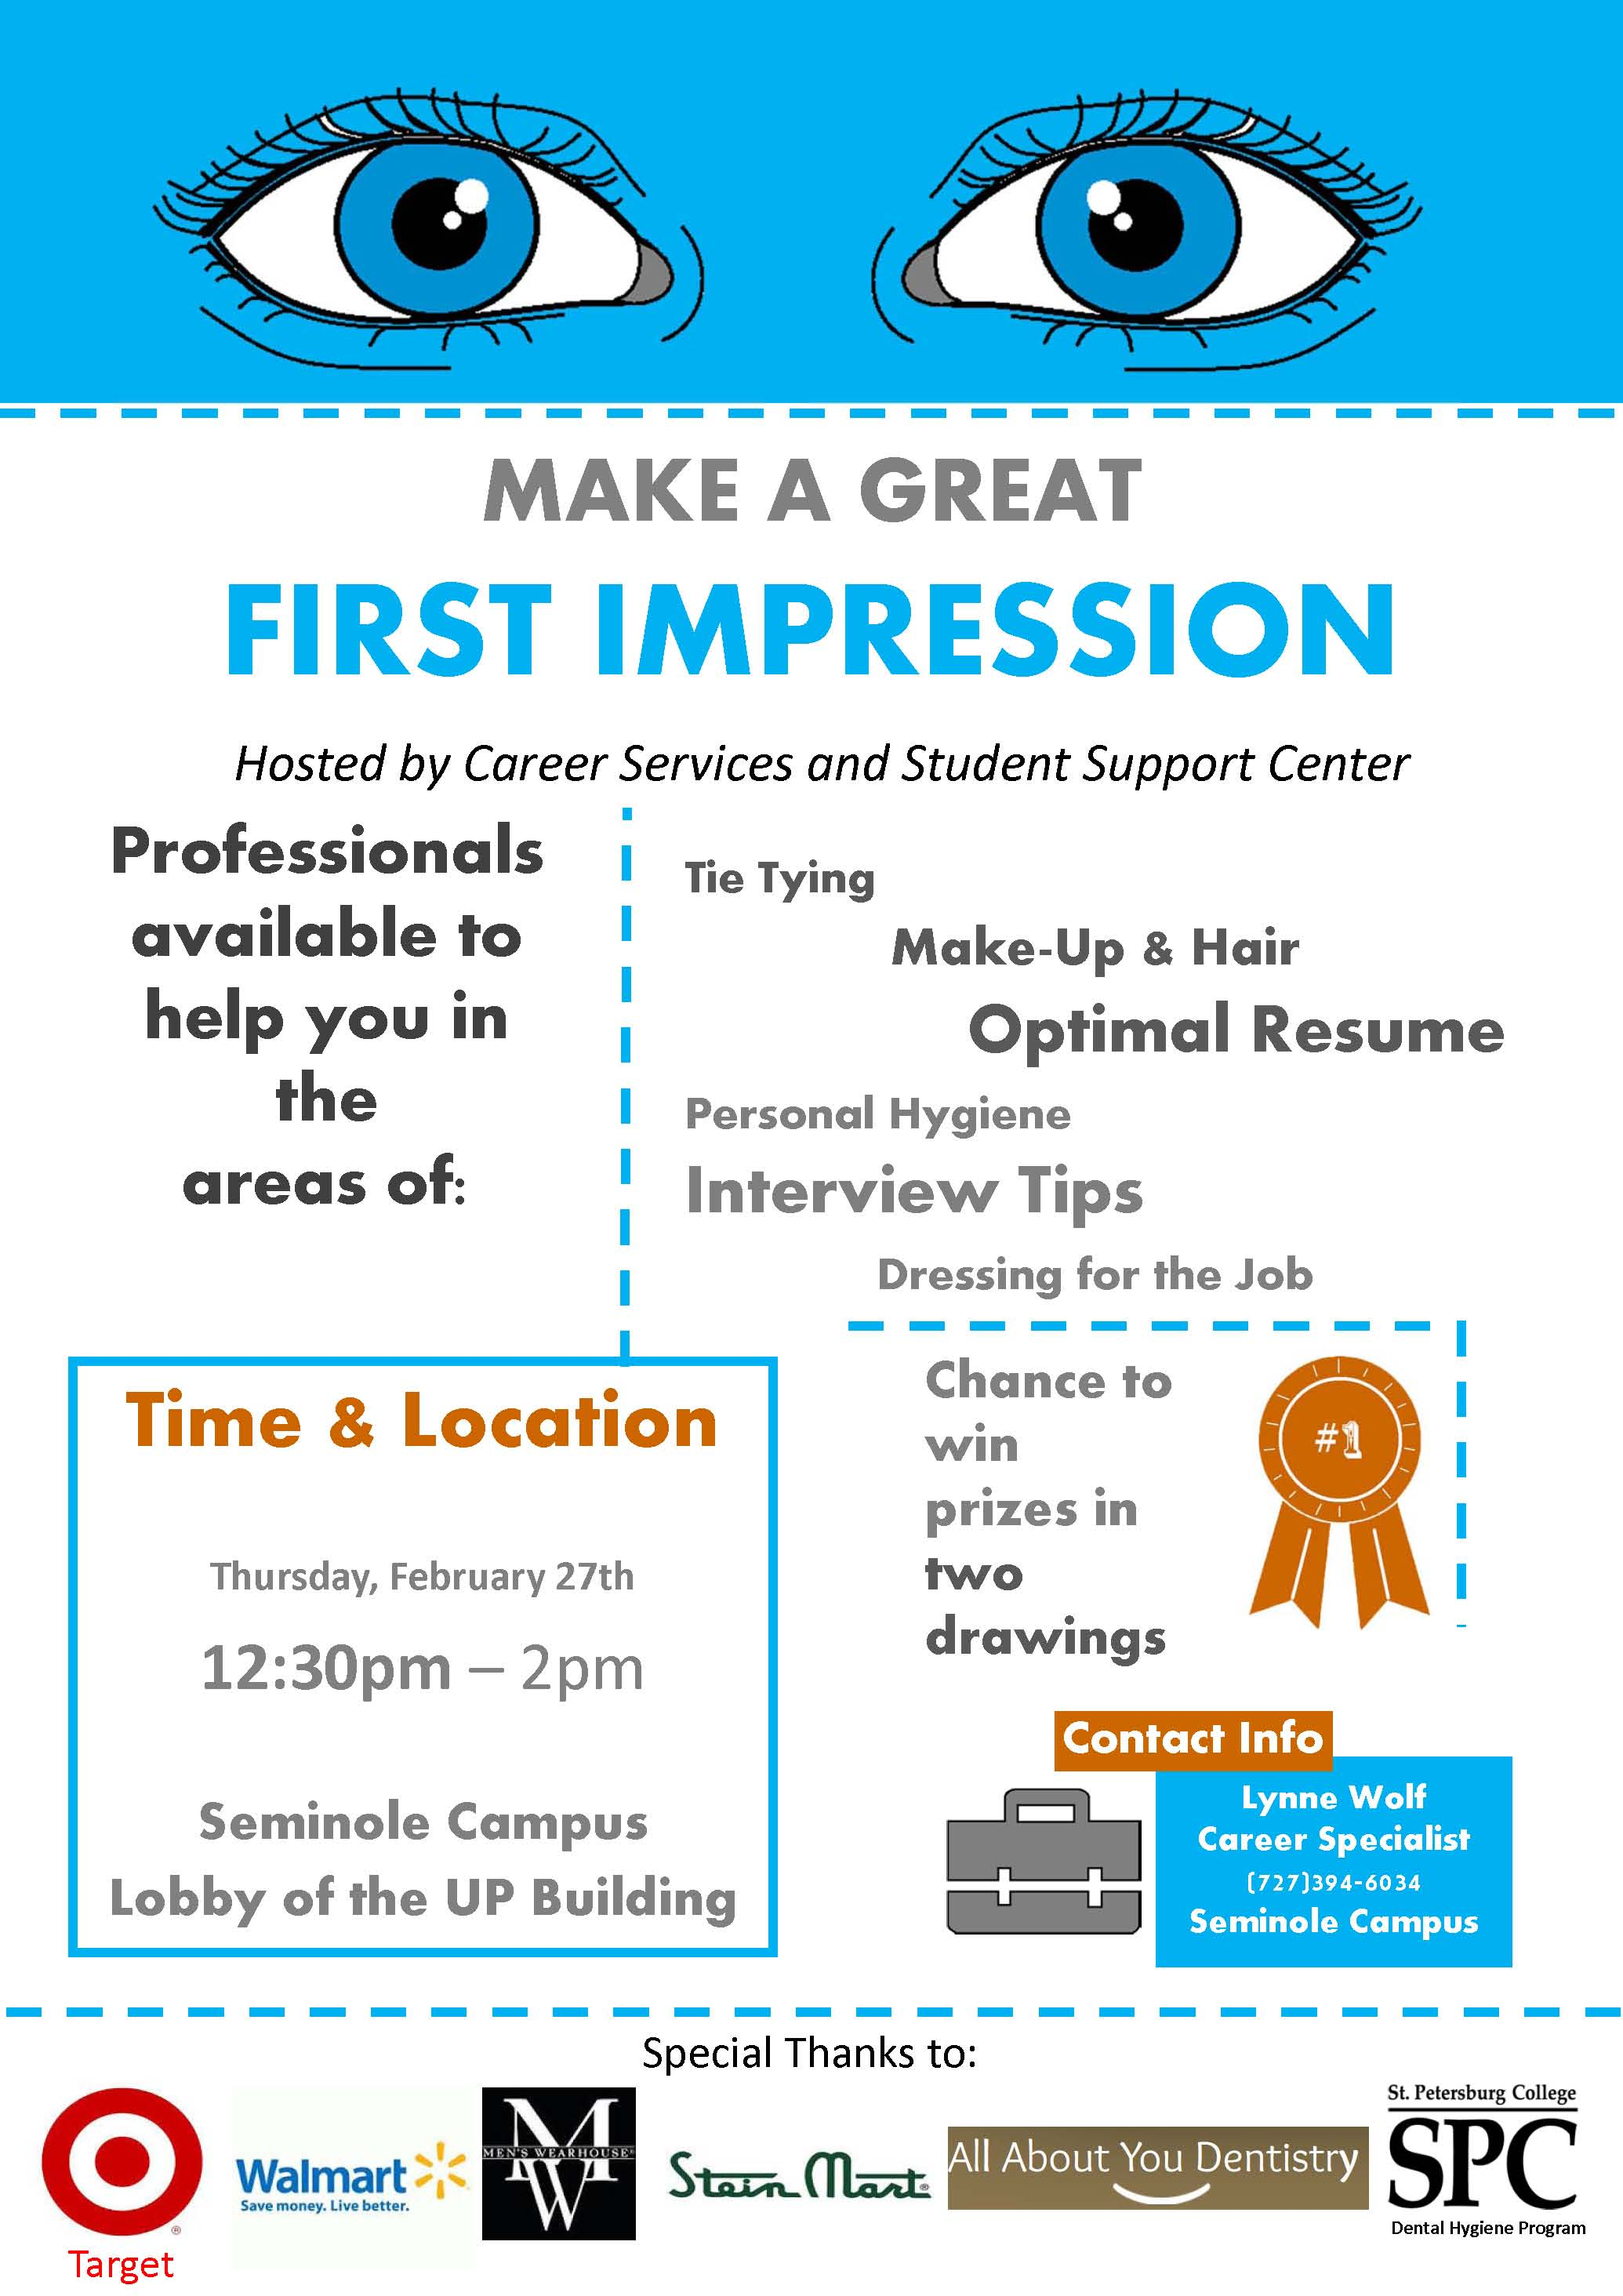 Learn How To Make A Great First Impression